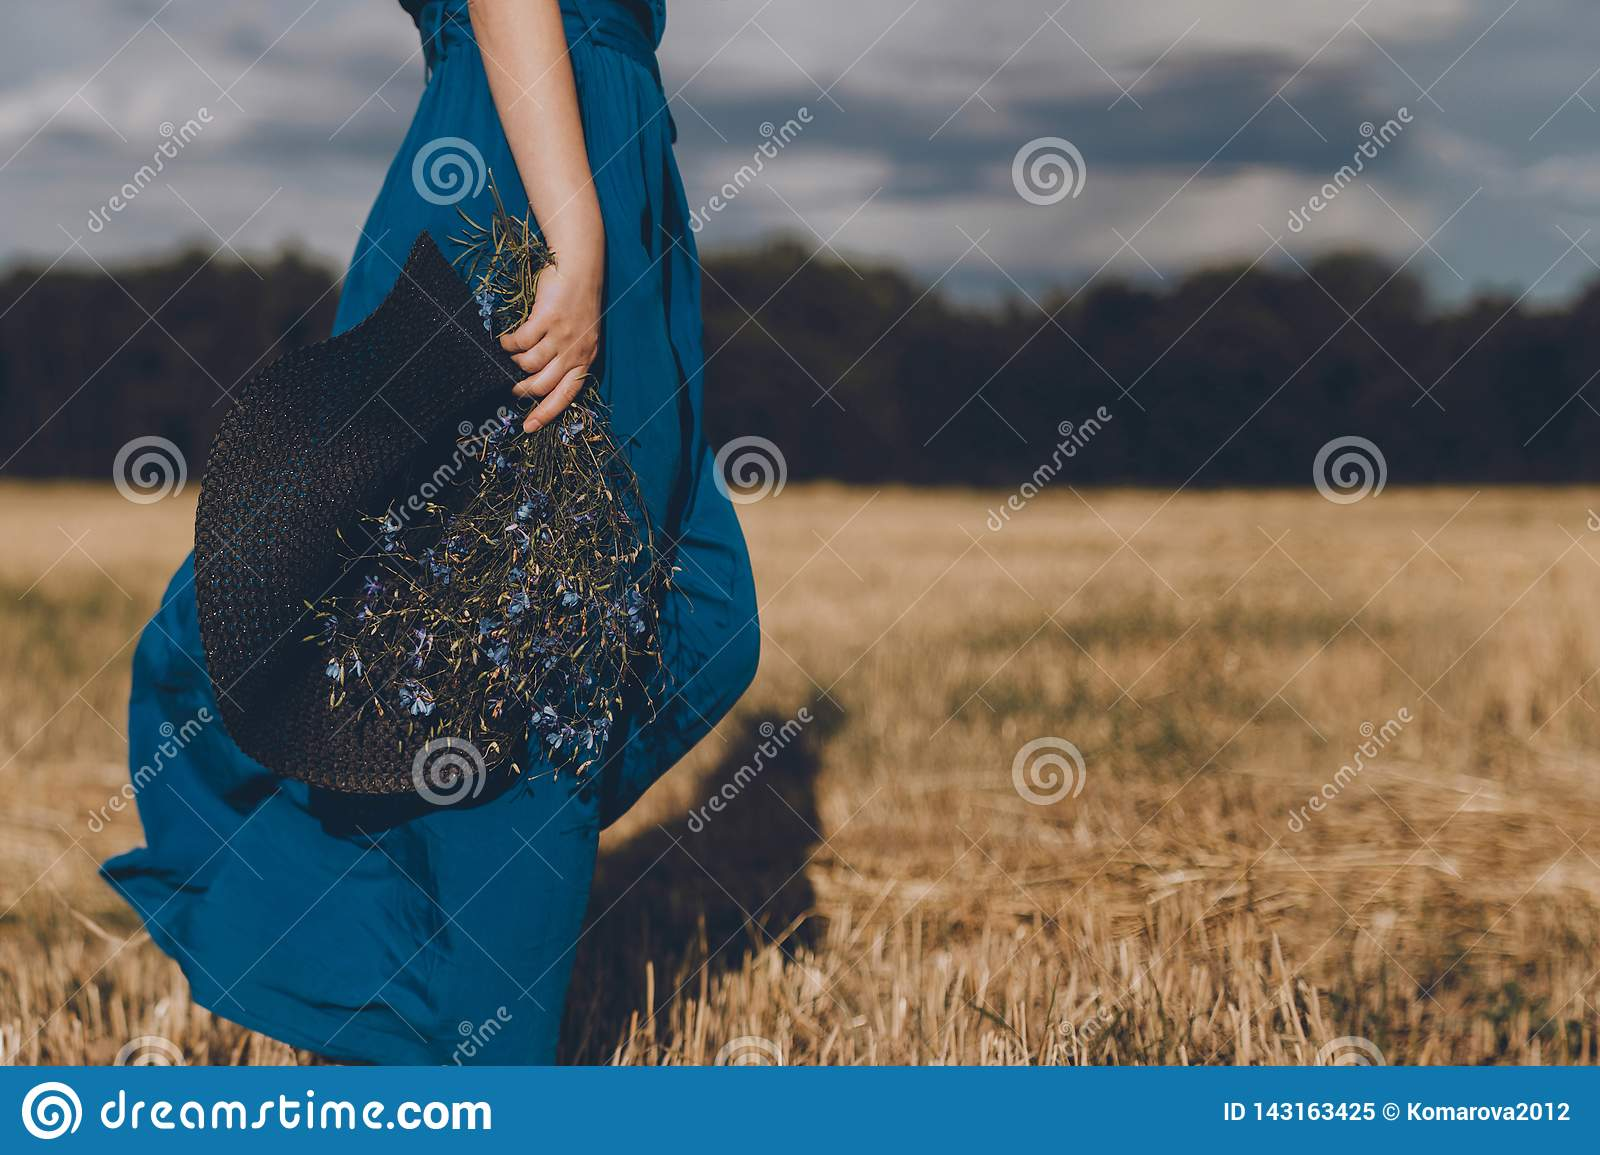 Woman in blue dress with a hat in her hand and bouquet walks around the yellow field